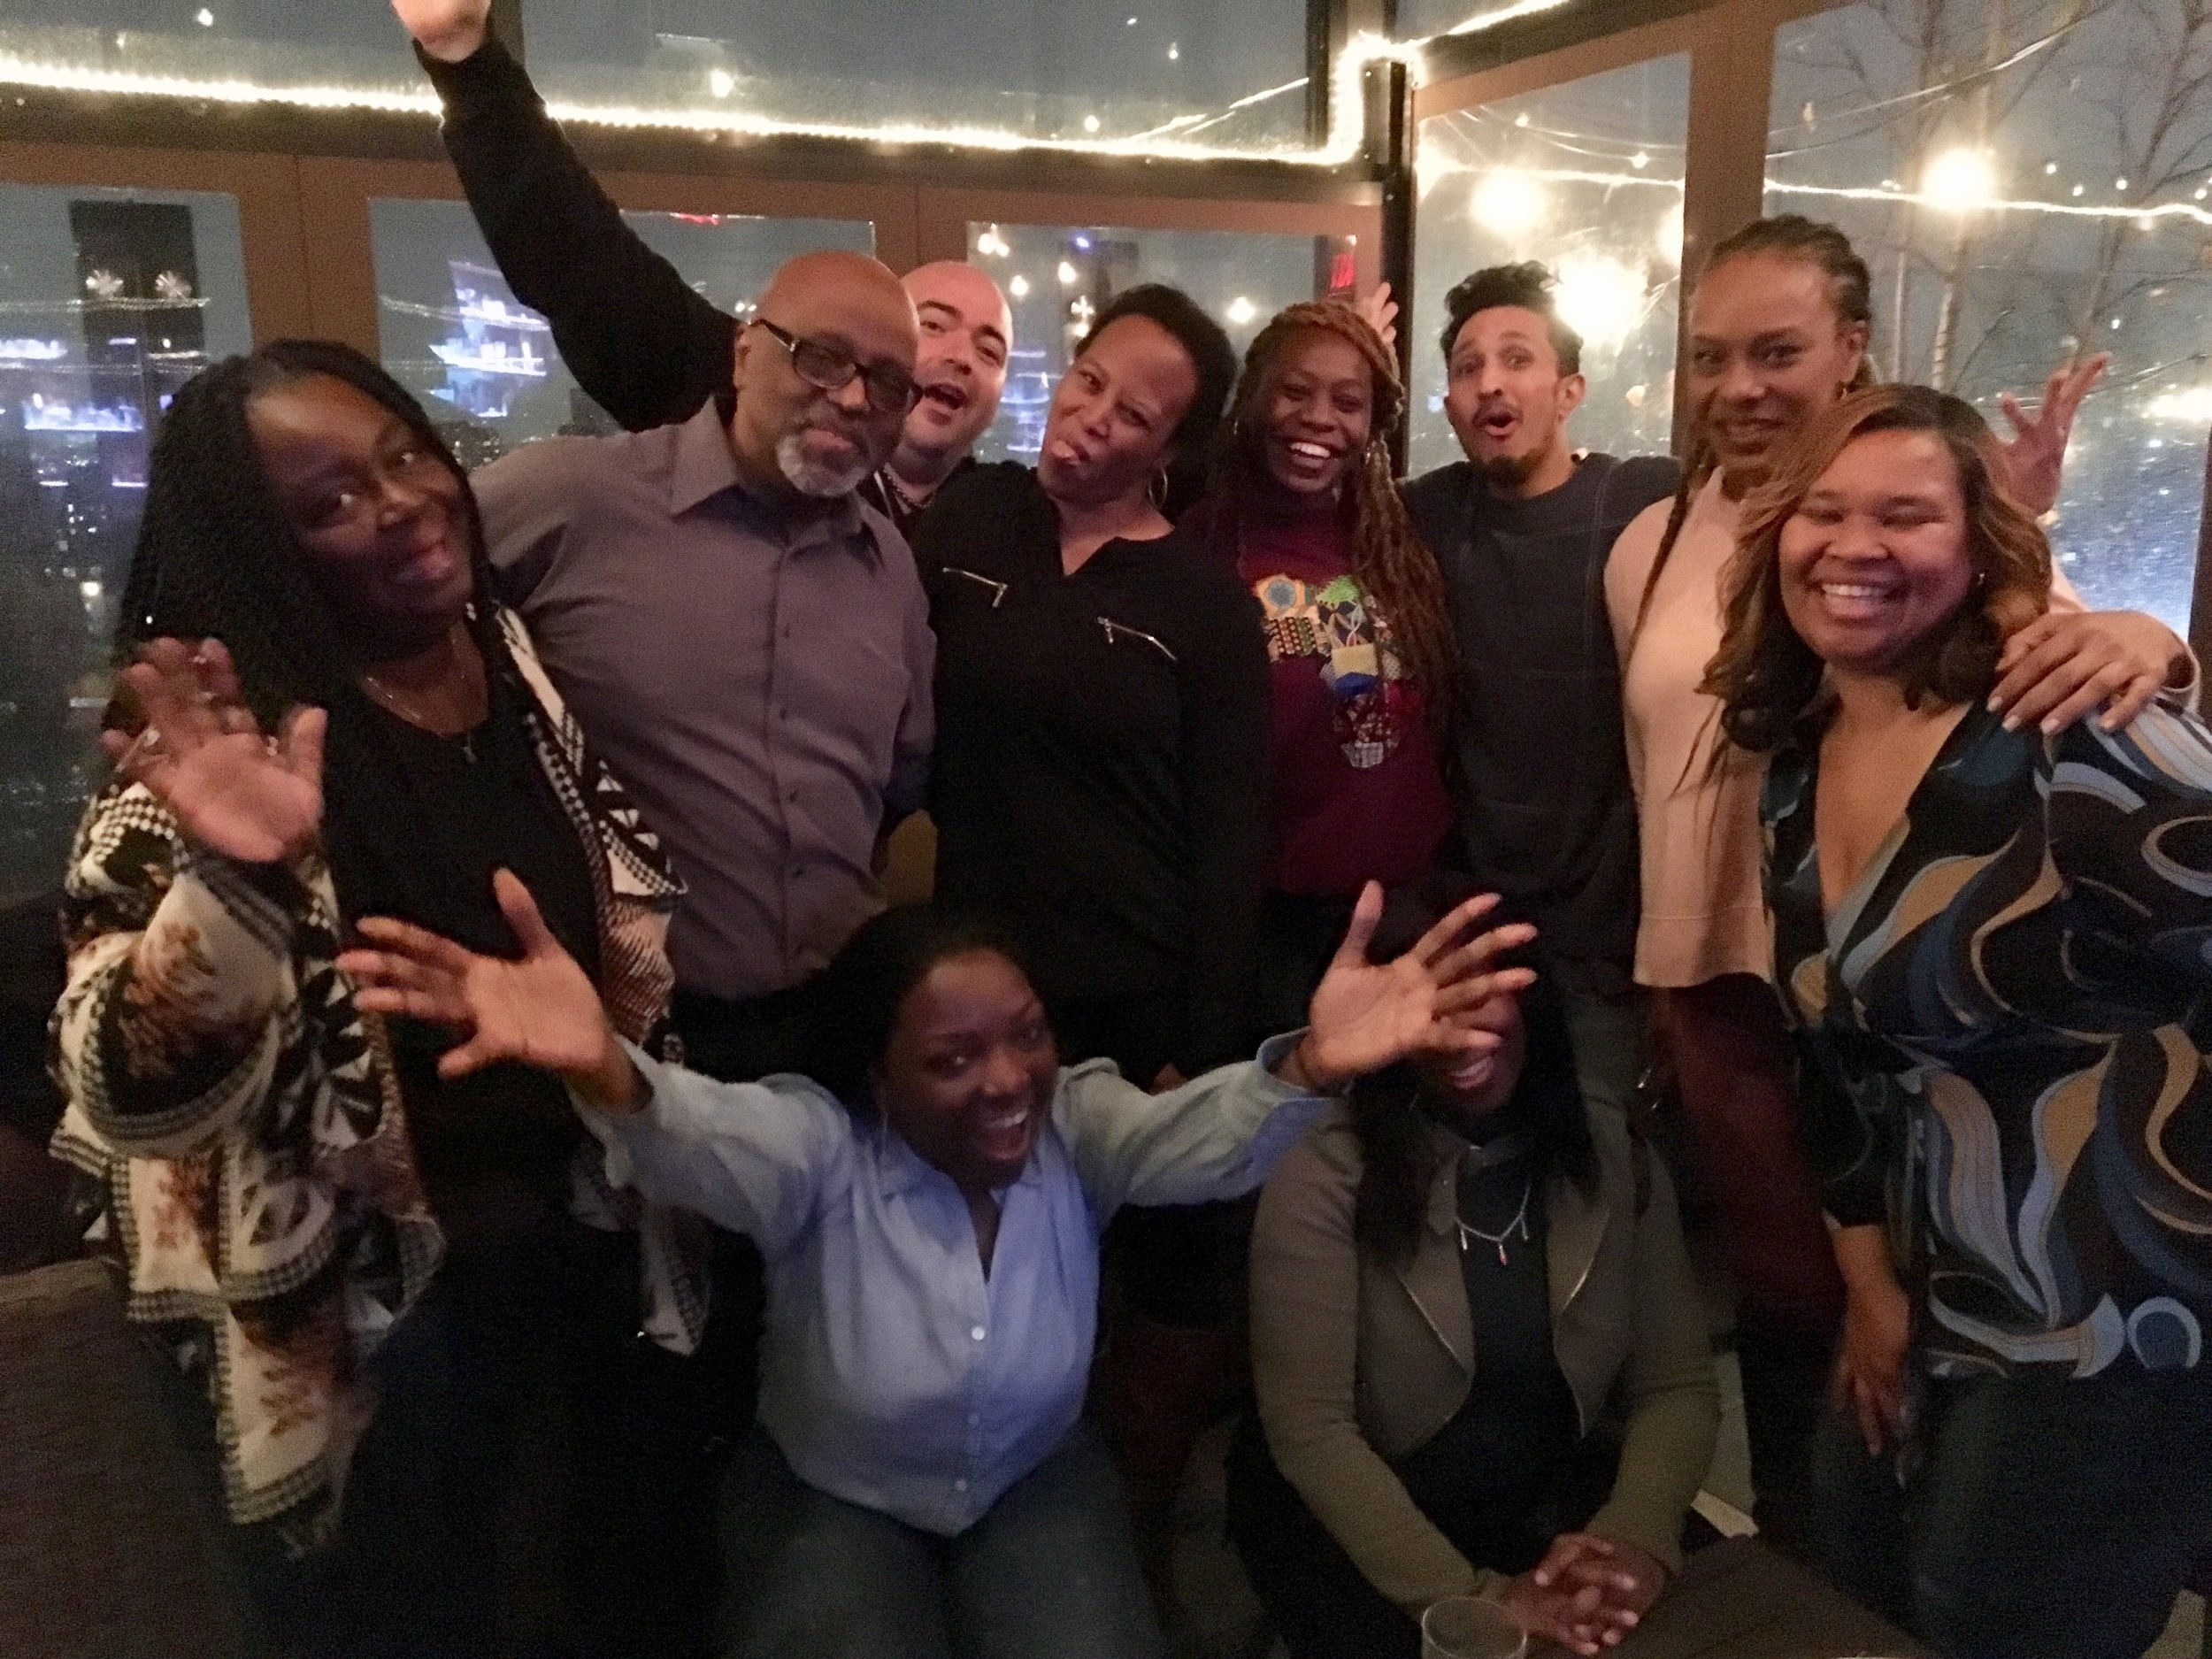 Jamaica & Southeast Queens Art Producers & Artists at the 2018-19 ACP Kickoff Party From Left: Tyra Emerson, Darrell Bridges, Jesus Ward, LaNeese Ray, Brittany Wilson, Y? Guyadin, Kerri Edge, Linette Townsley, Brendez Wineglass, and Yolanda Johnson